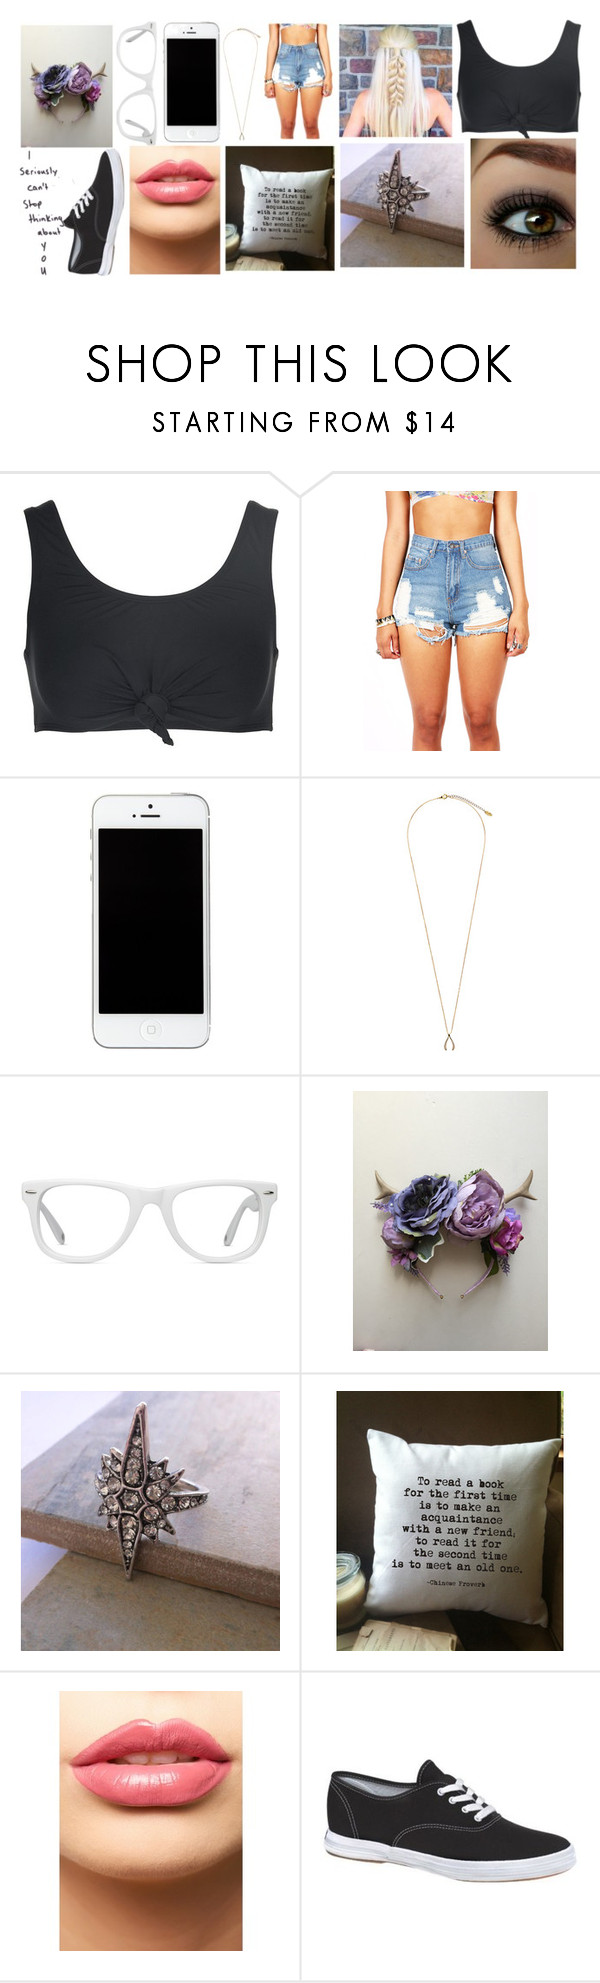 """""""im confused"""" by troylerzalfie on Polyvore featuring Beth Richards, Topshop, Muse, LASplash, Keds, women's clothing, women's fashion, women, female and woman"""